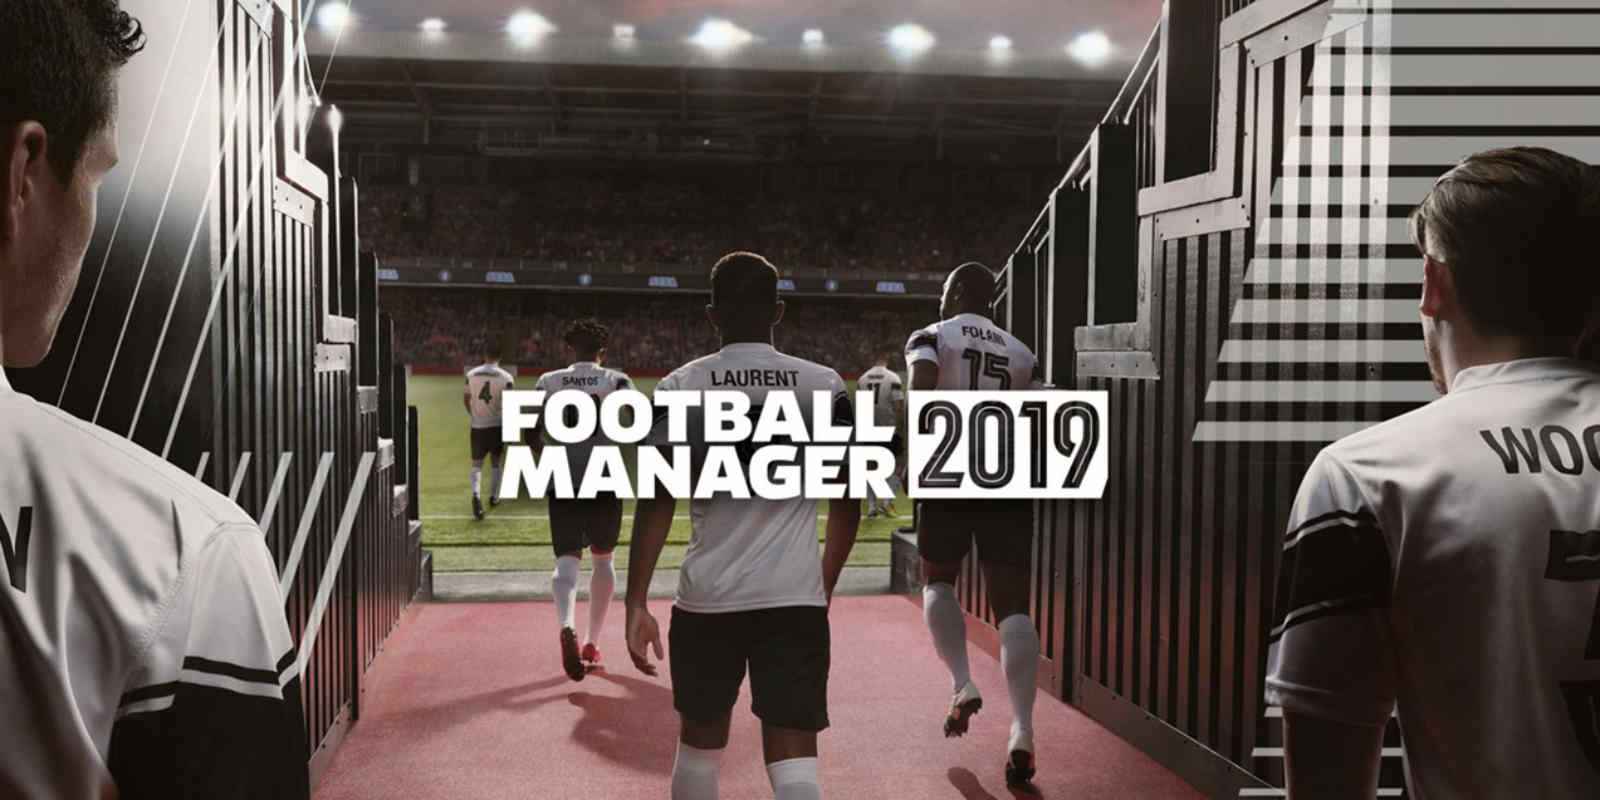 Download-Football-Manager-2019-MOD-APK